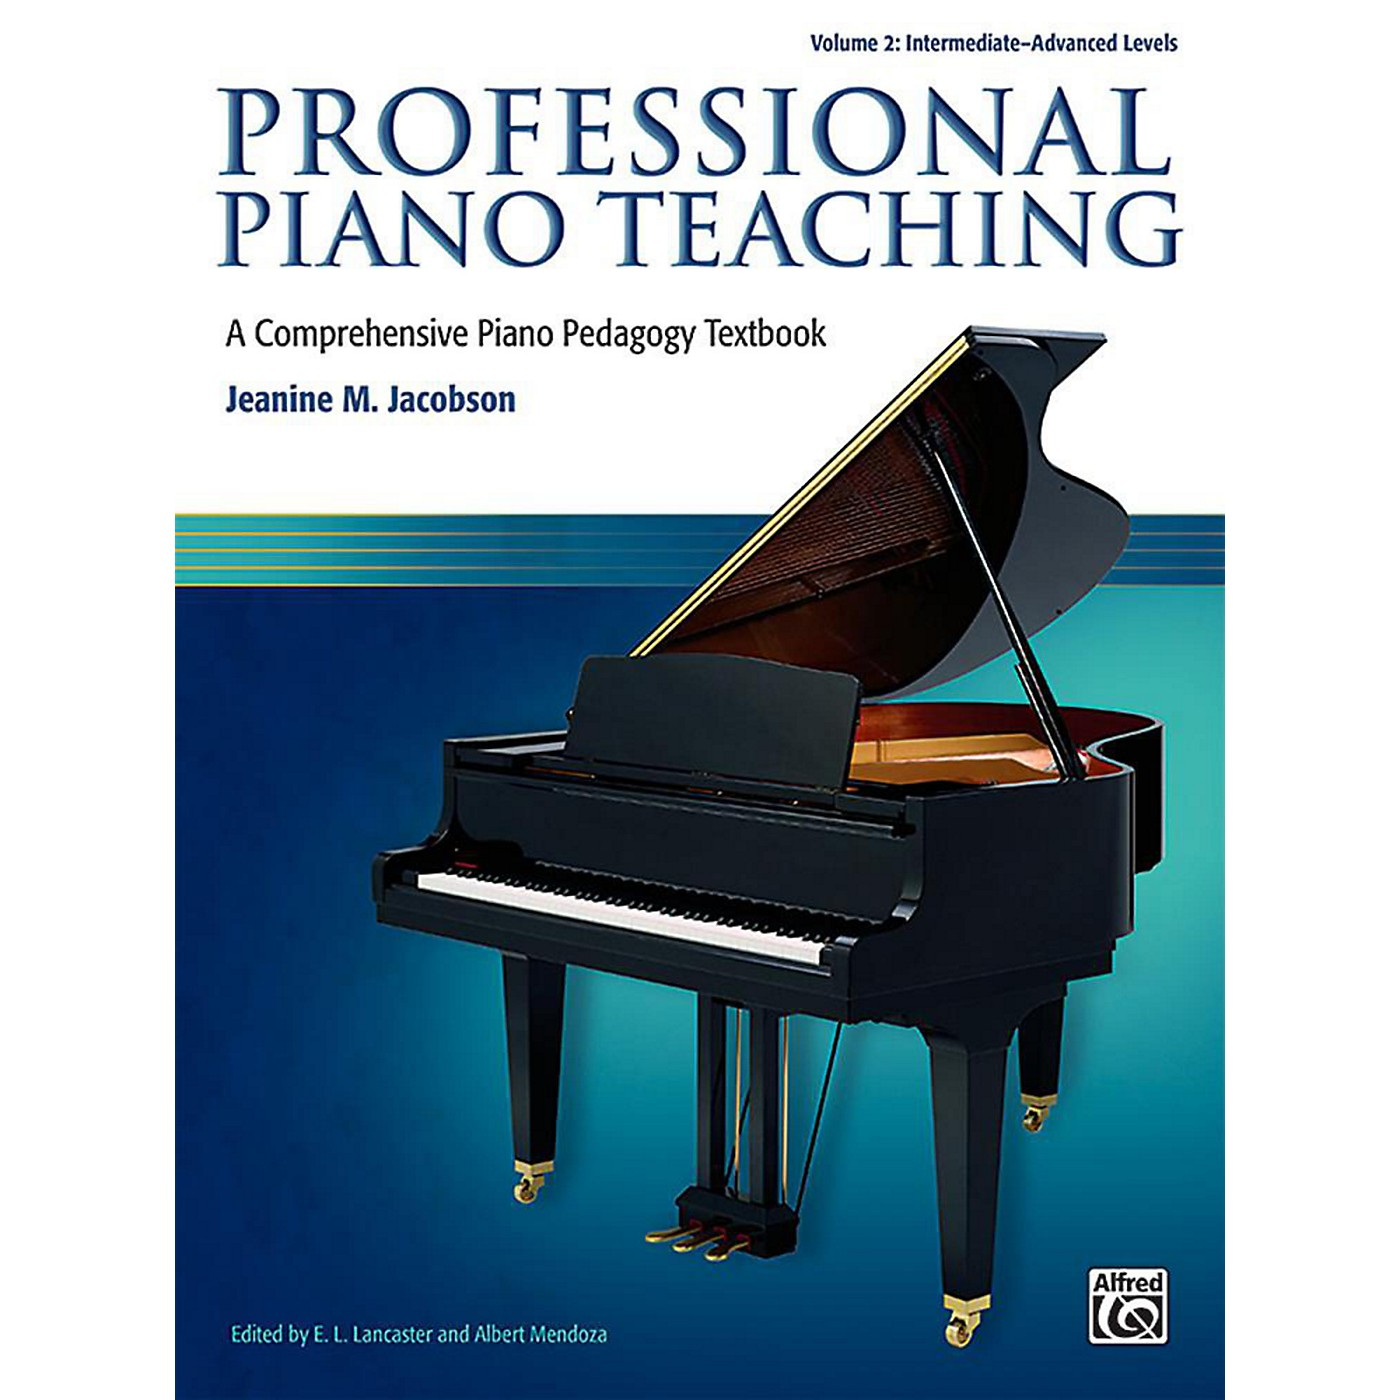 Alfred Professional Piano Teaching, Volume 2 - Intermediate / Advanced thumbnail